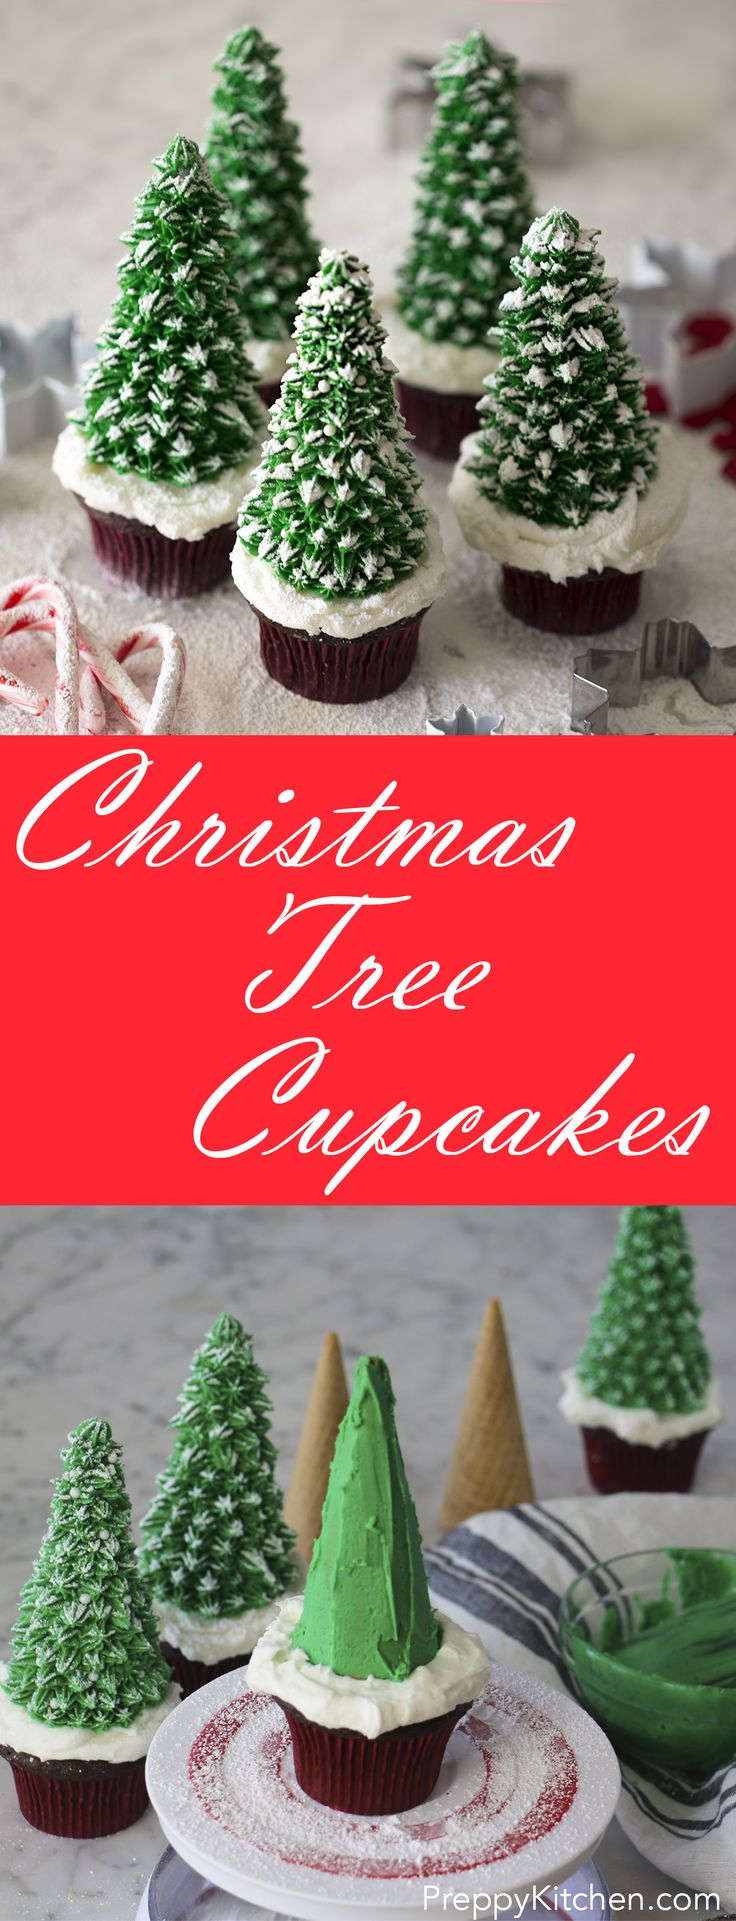 Best 25 christmas tree cookies ideas on pinterest tree cookies best 25 christmas tree cookies ideas on pinterest tree cookies christmas tree cake and decorating gingerbread cookies forumfinder Images